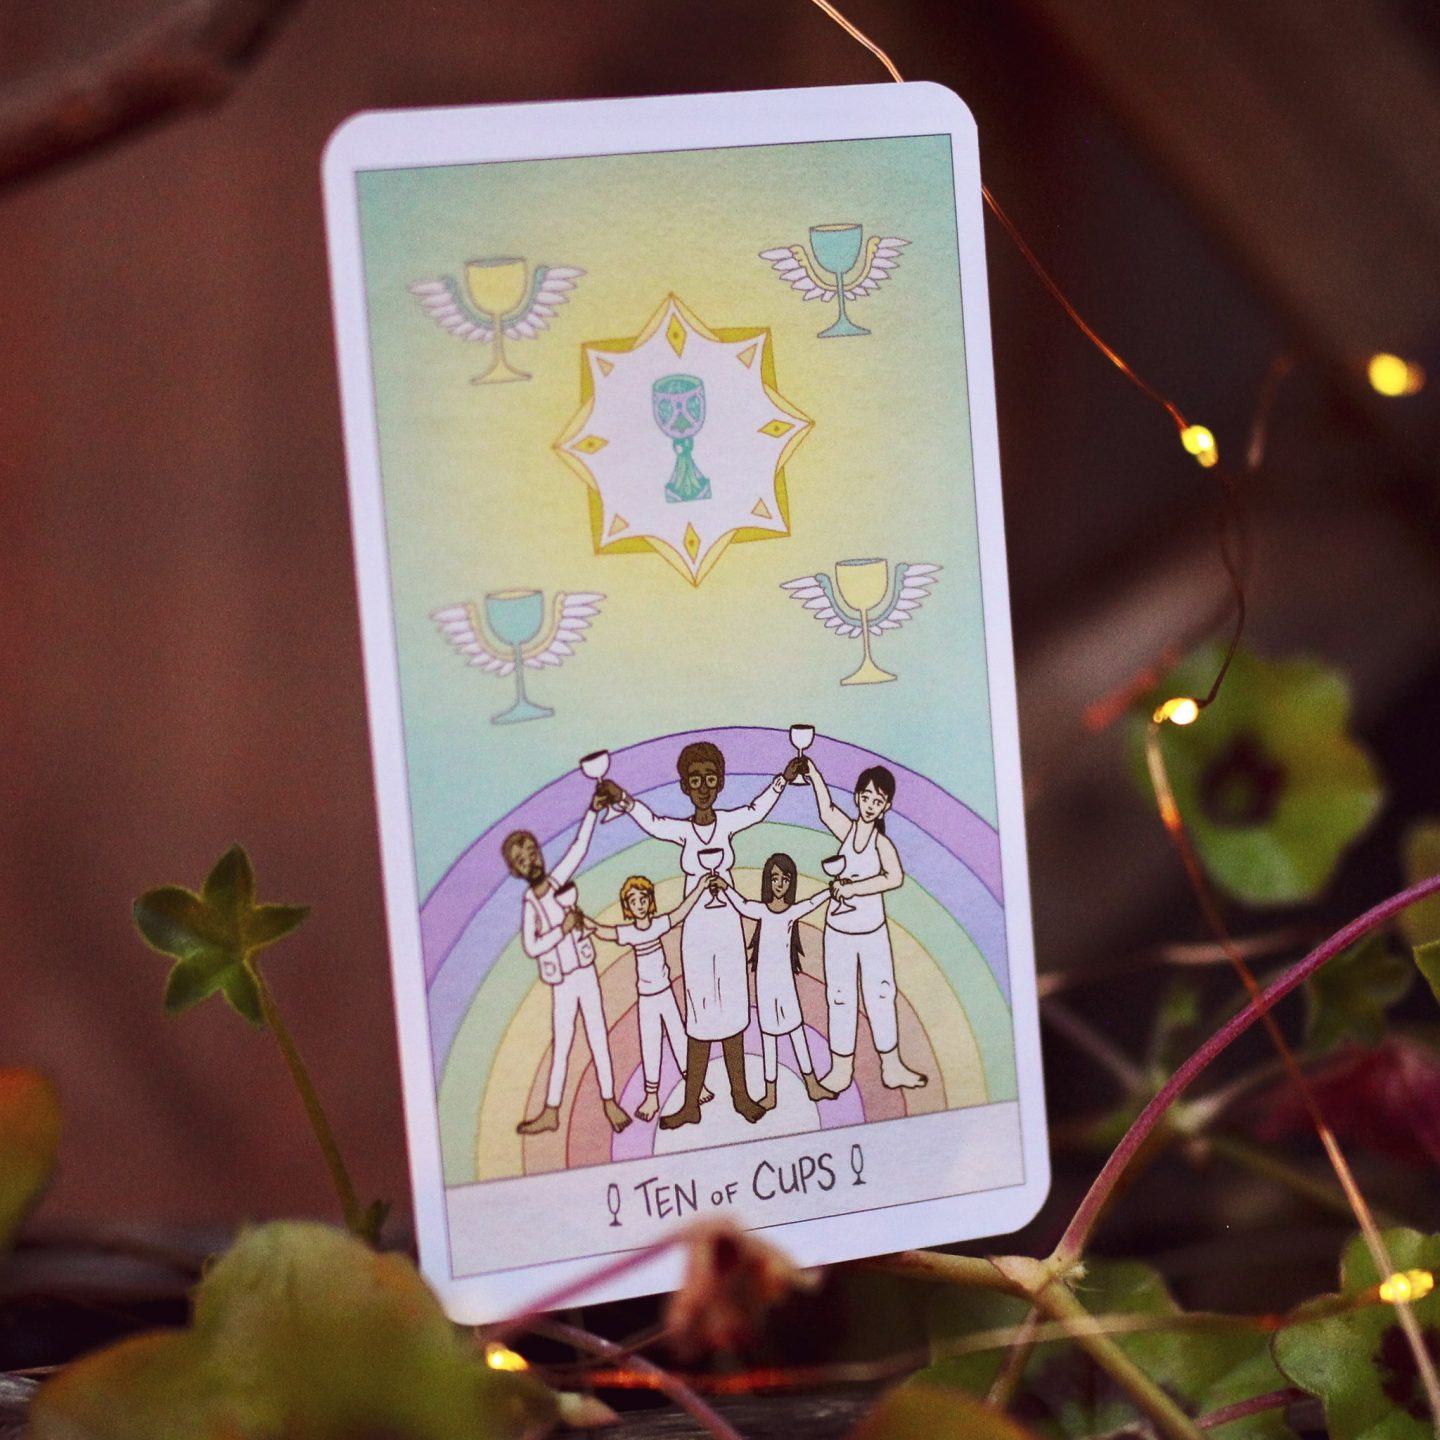 The Ten of Cups from the Luna Sol Tarot